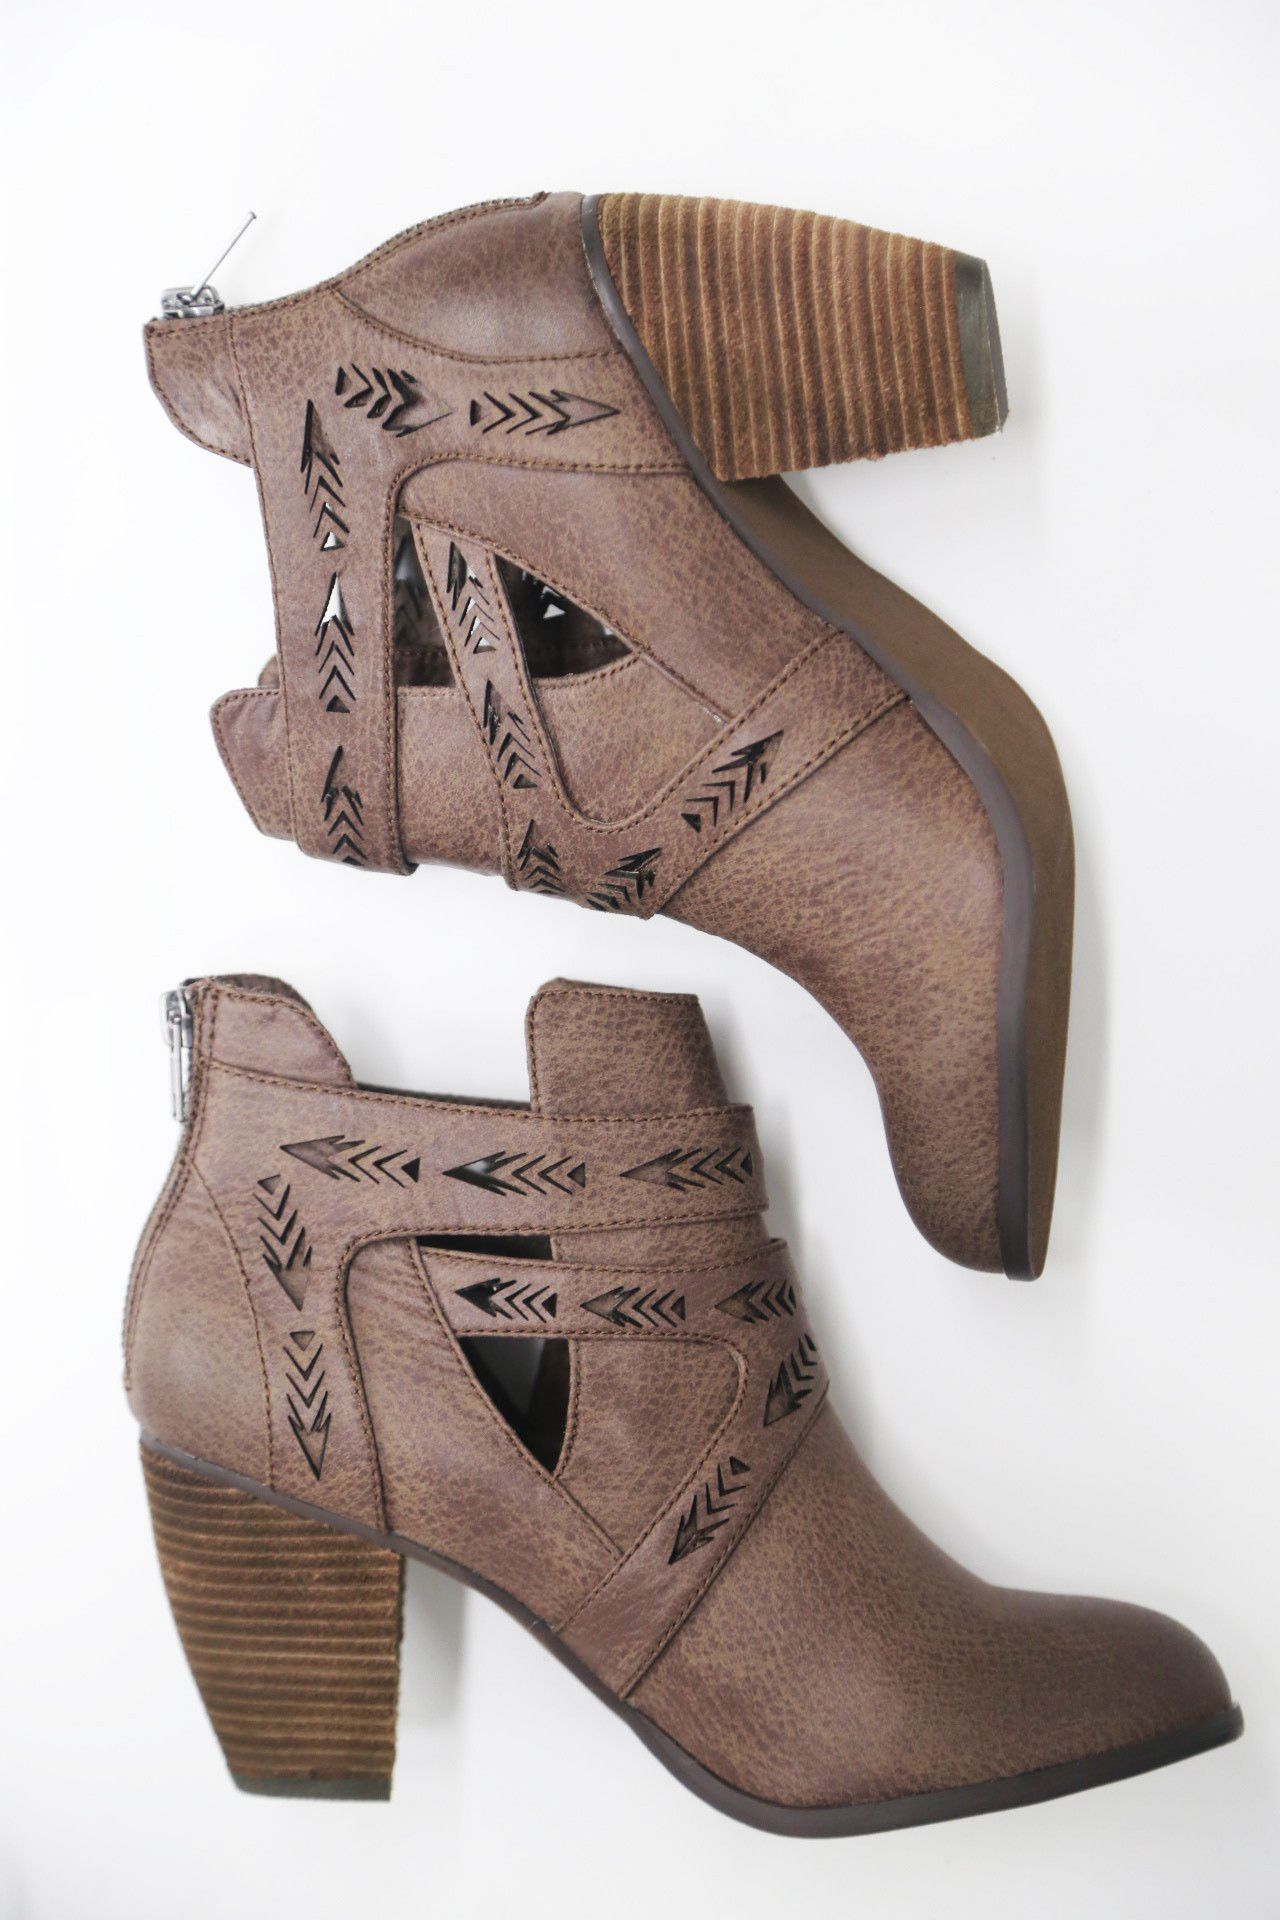 ca0a5532fcab8 Enzo By Not Rated - The Rage - 1 | Fashion + Style | Shoe boots ...